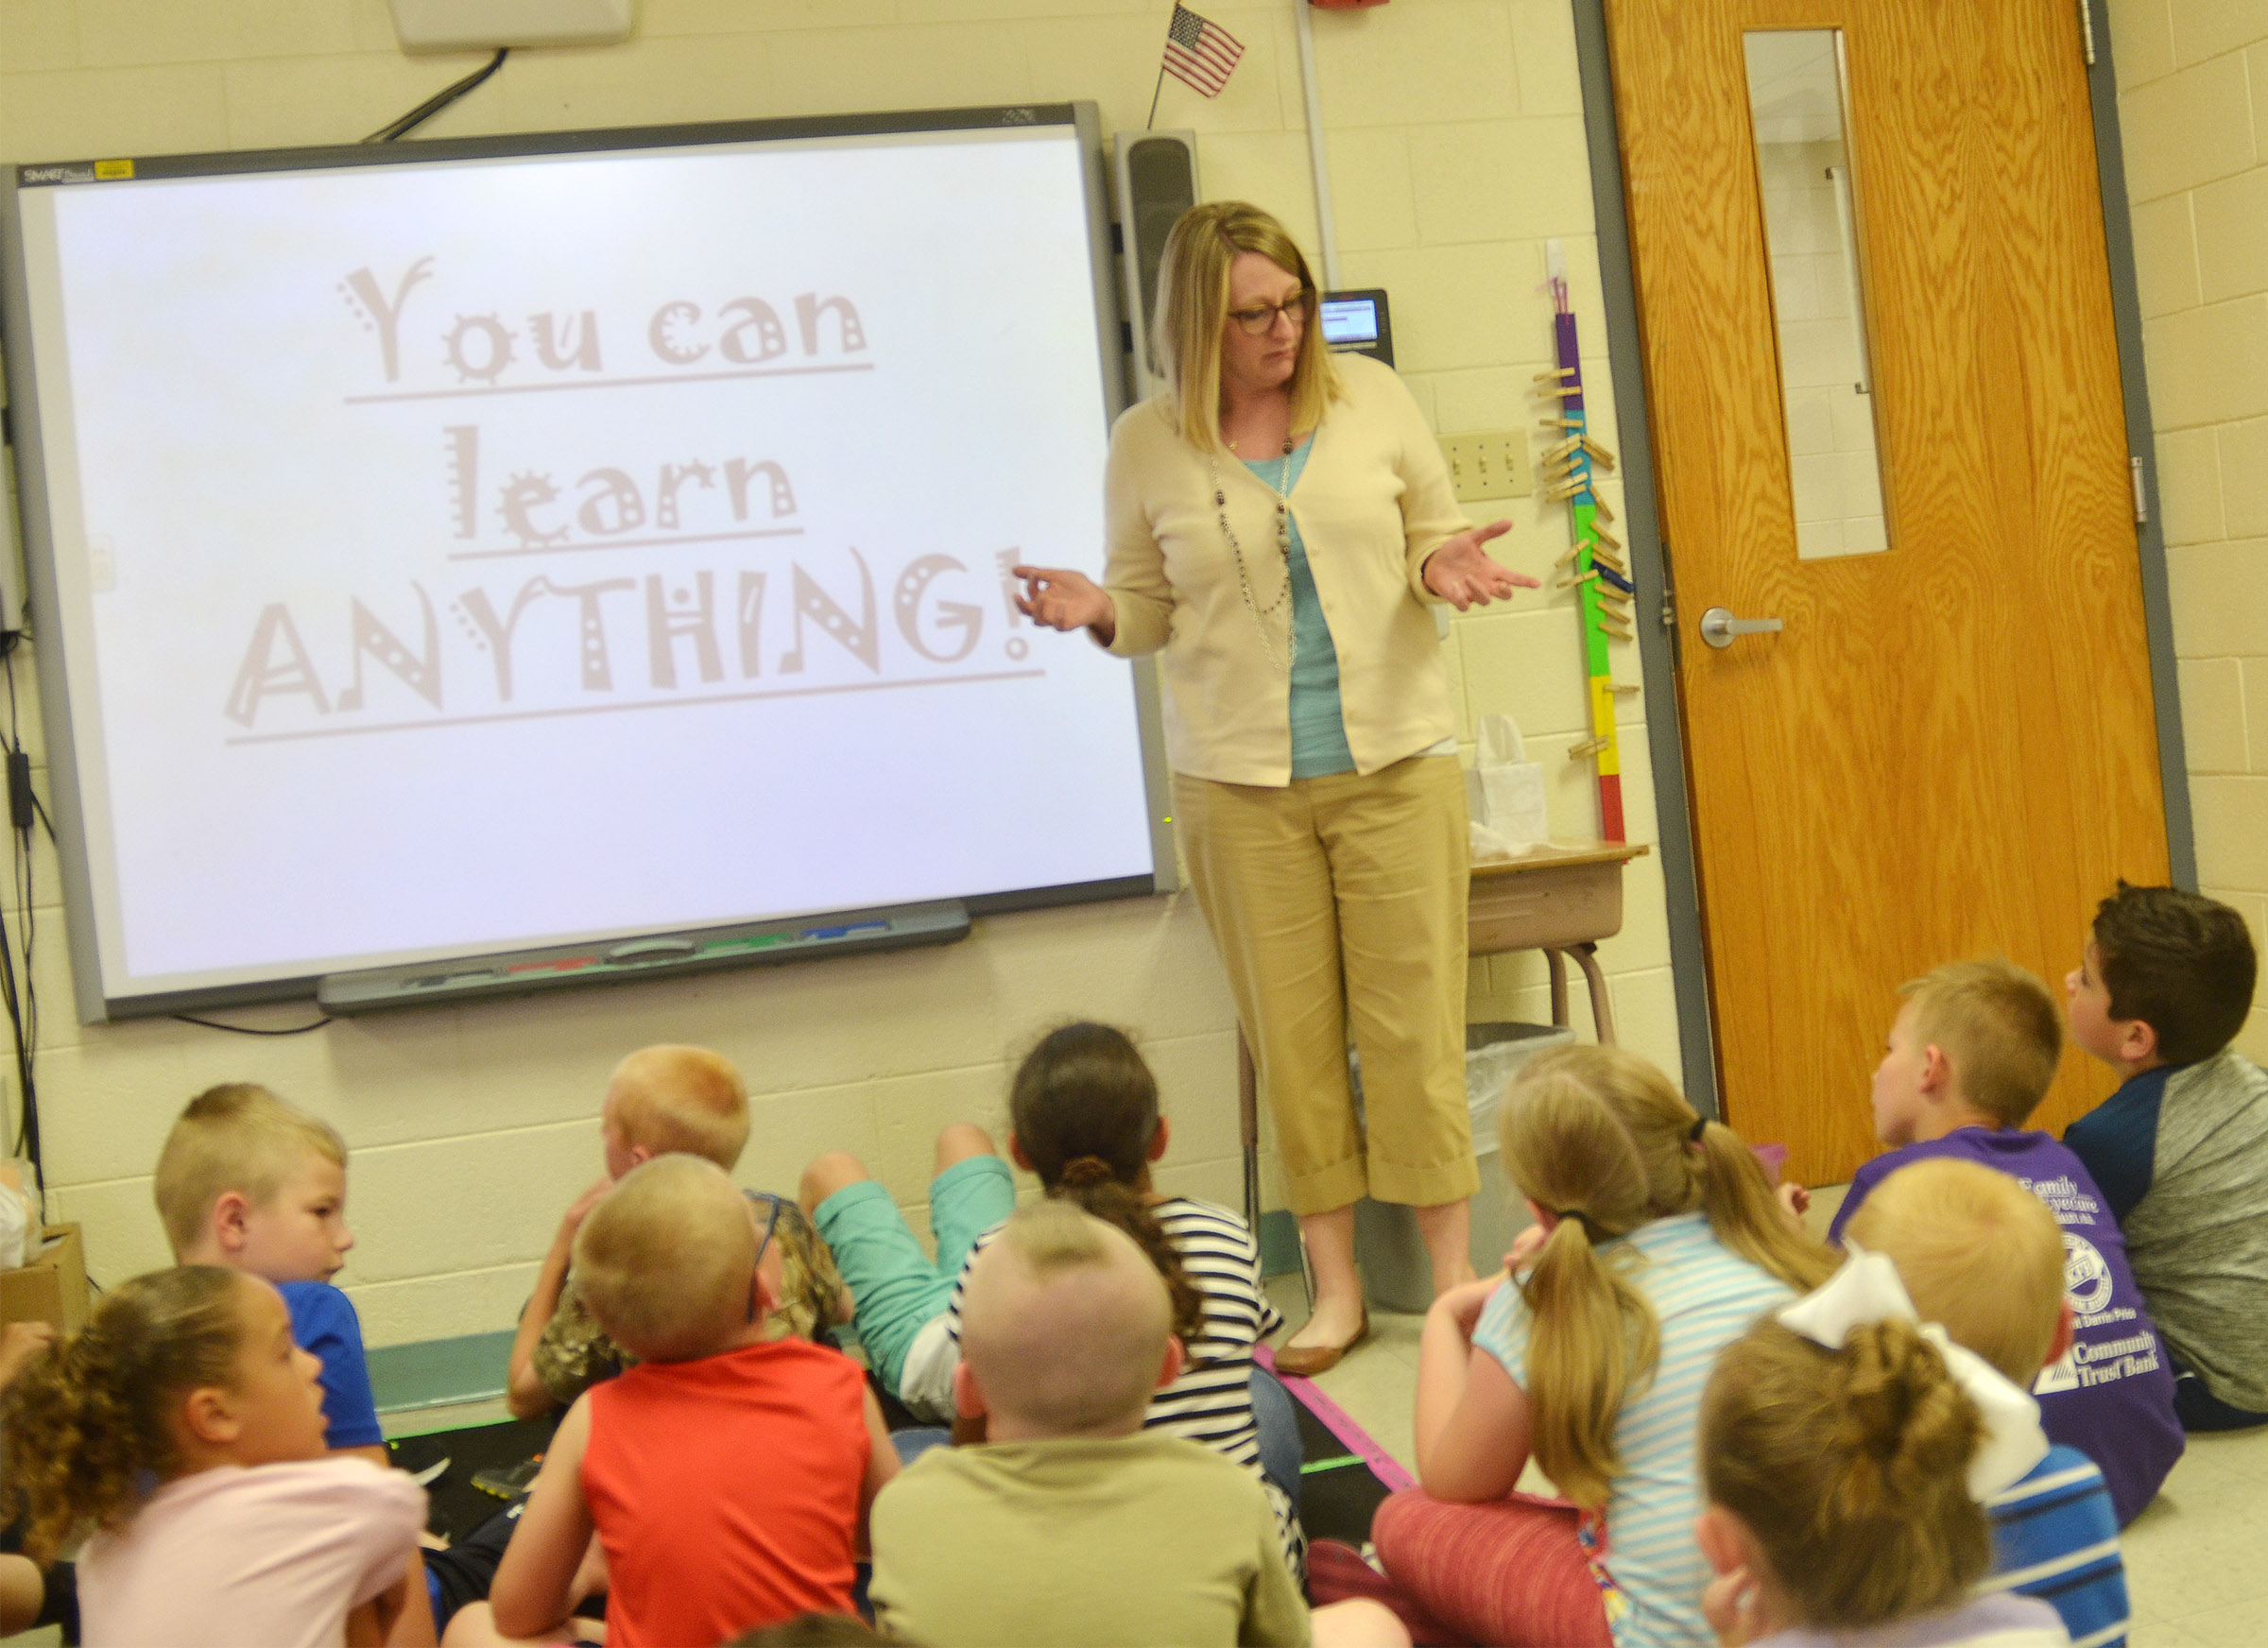 CES reading interventionist Laura Dicken encourages first-graders to don't give up on learning how to do new activities, just because they can't do some of them now.